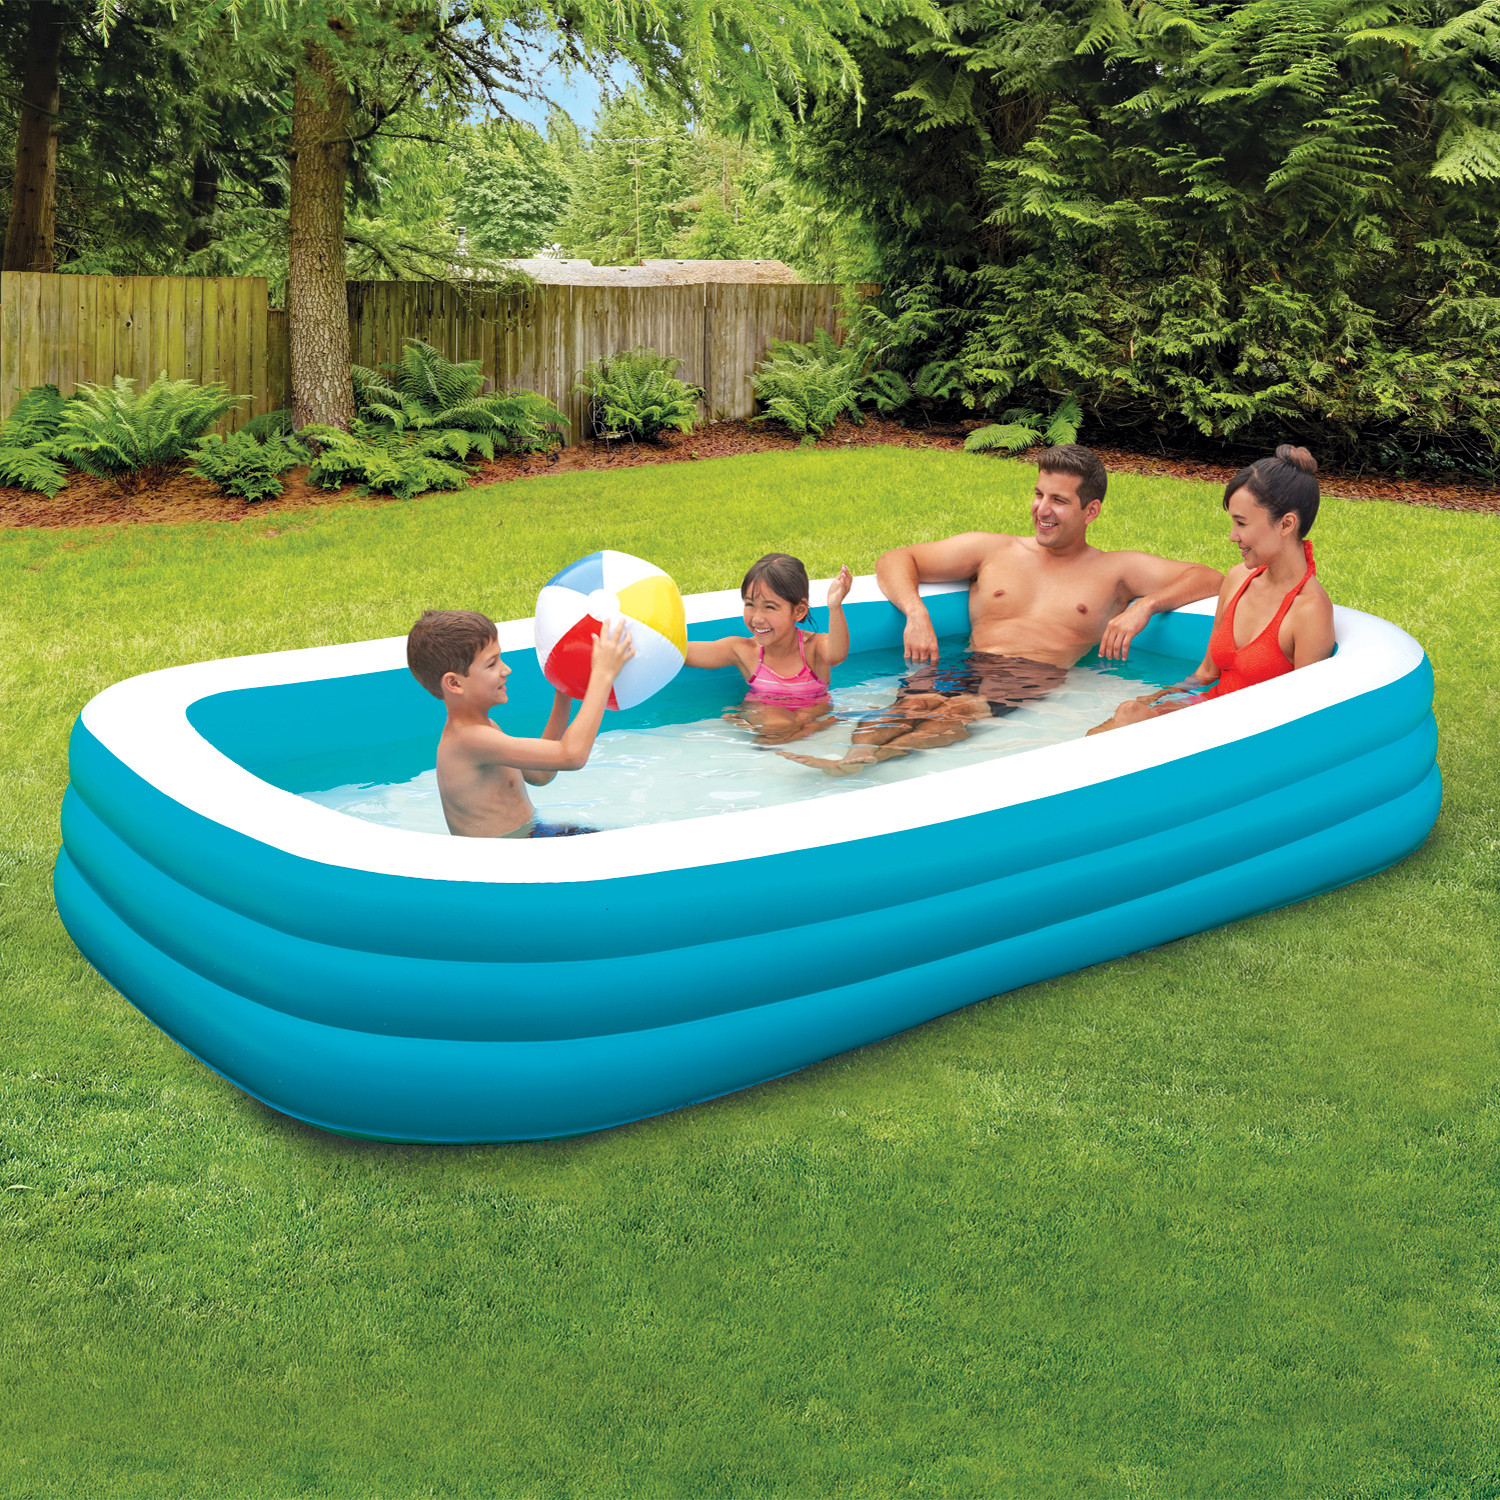 Kids Outdoor Swimming Pool  Play Day Family Swimming Pool Kids Outdoor Inflatable